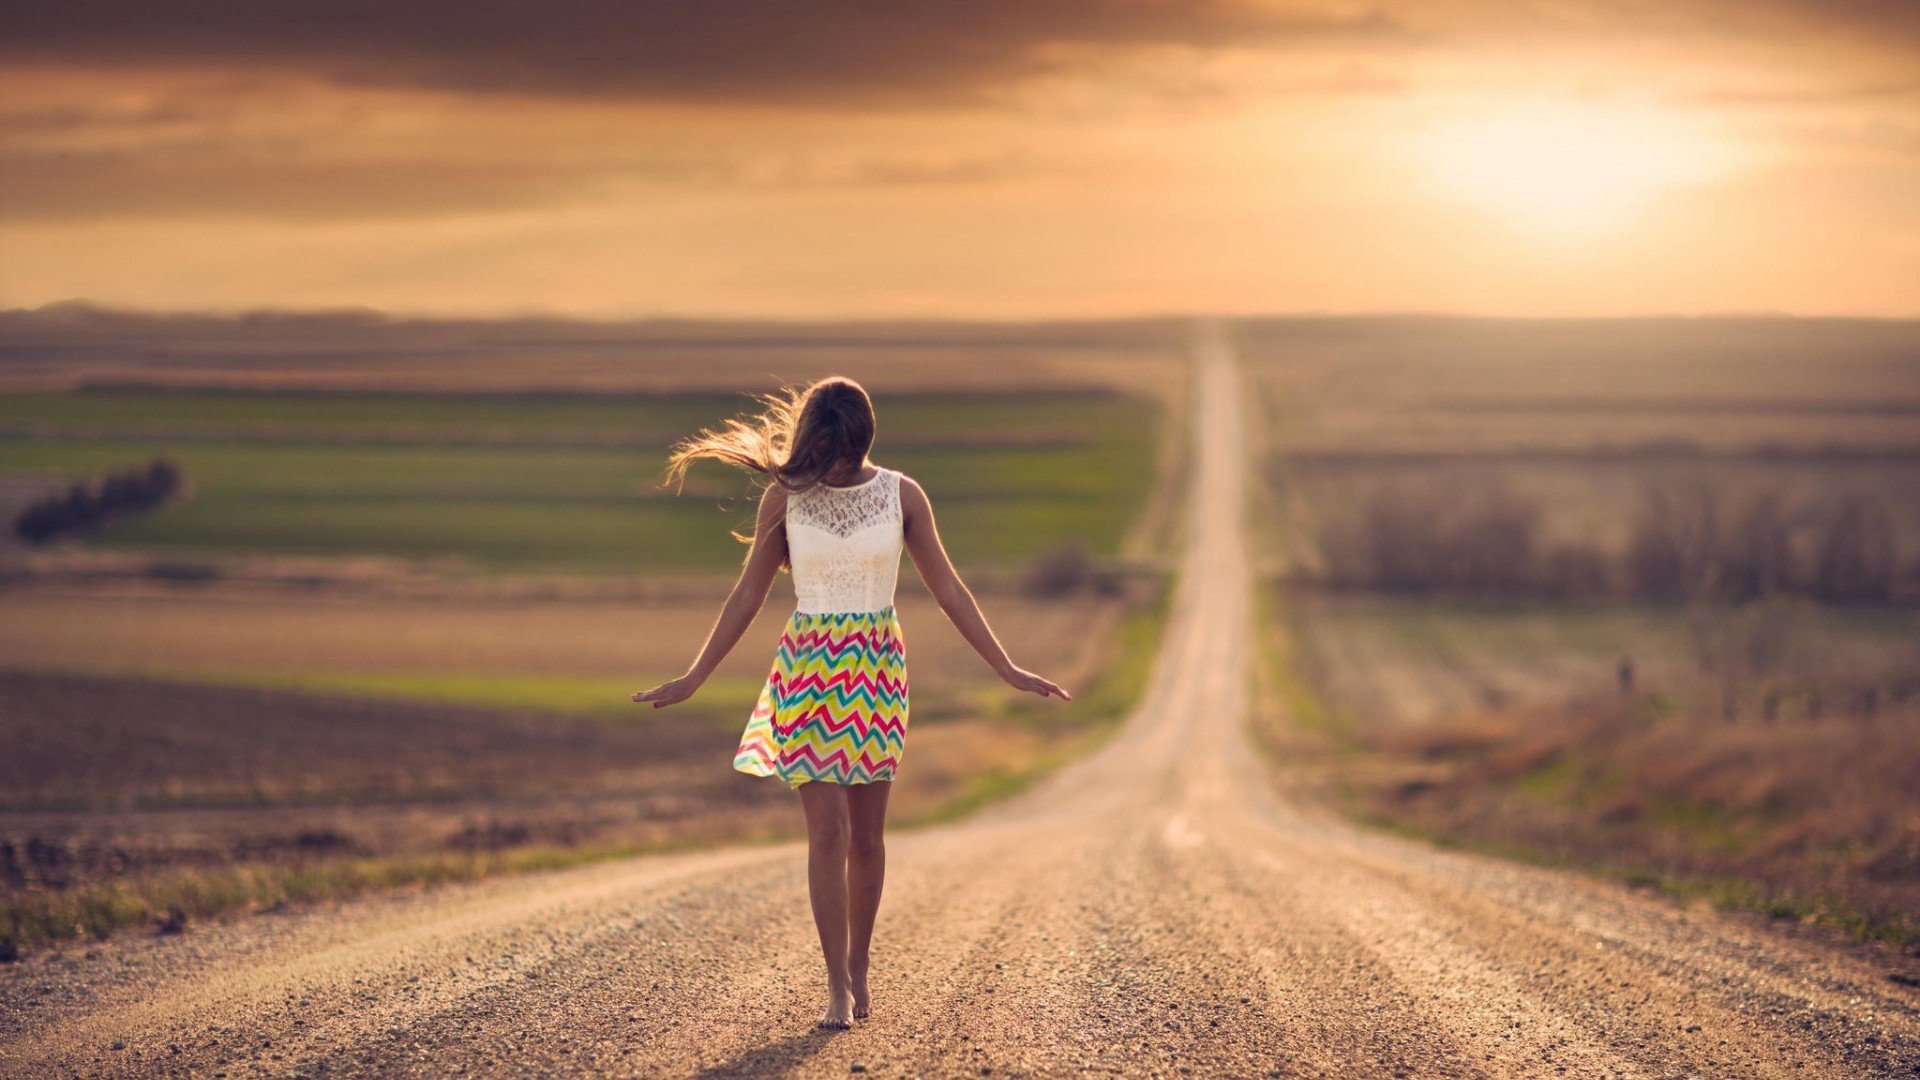 creative_wallpaper_girl_on_a_dirt_road_081037_